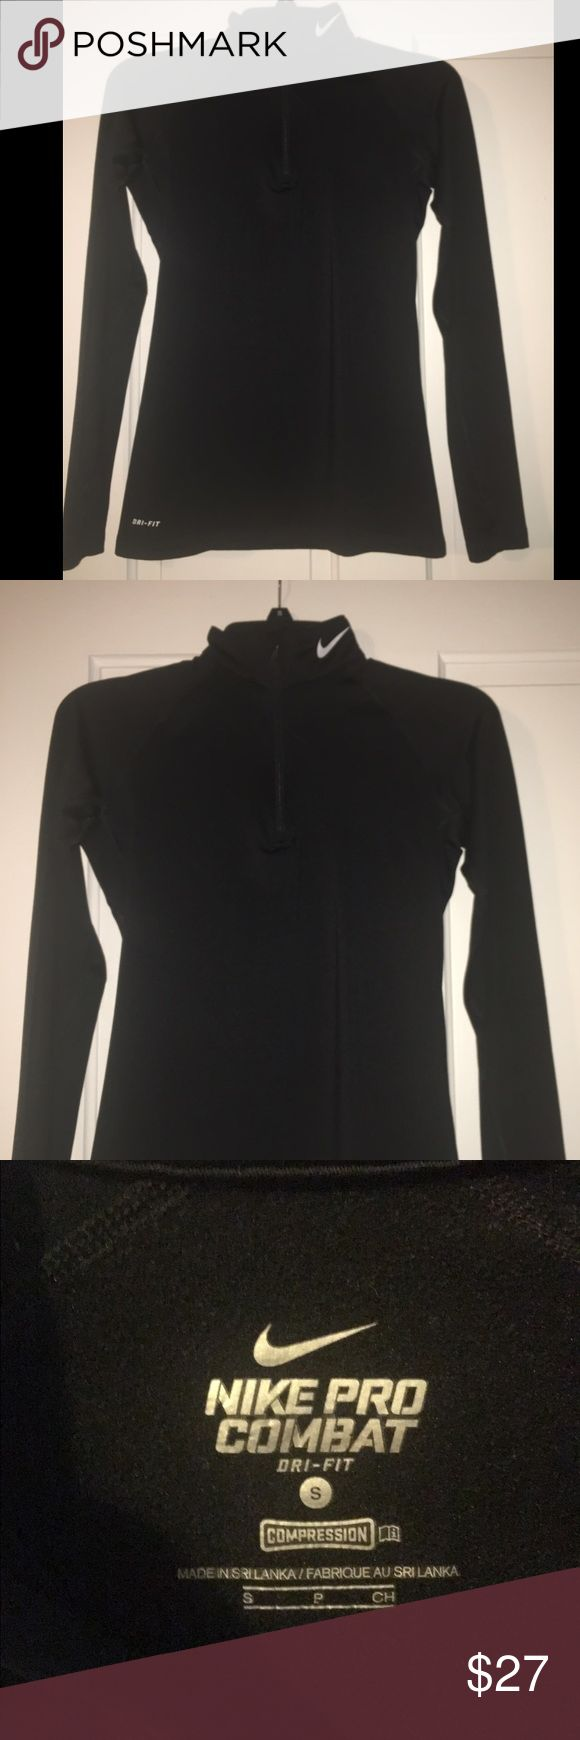 Nike 1/2 Zip Compression Pullover Great for working out in chilly weather. Compression. Dri-Fit. No stains, looks like new! Nike Tops Sweatshirts & Hoodies